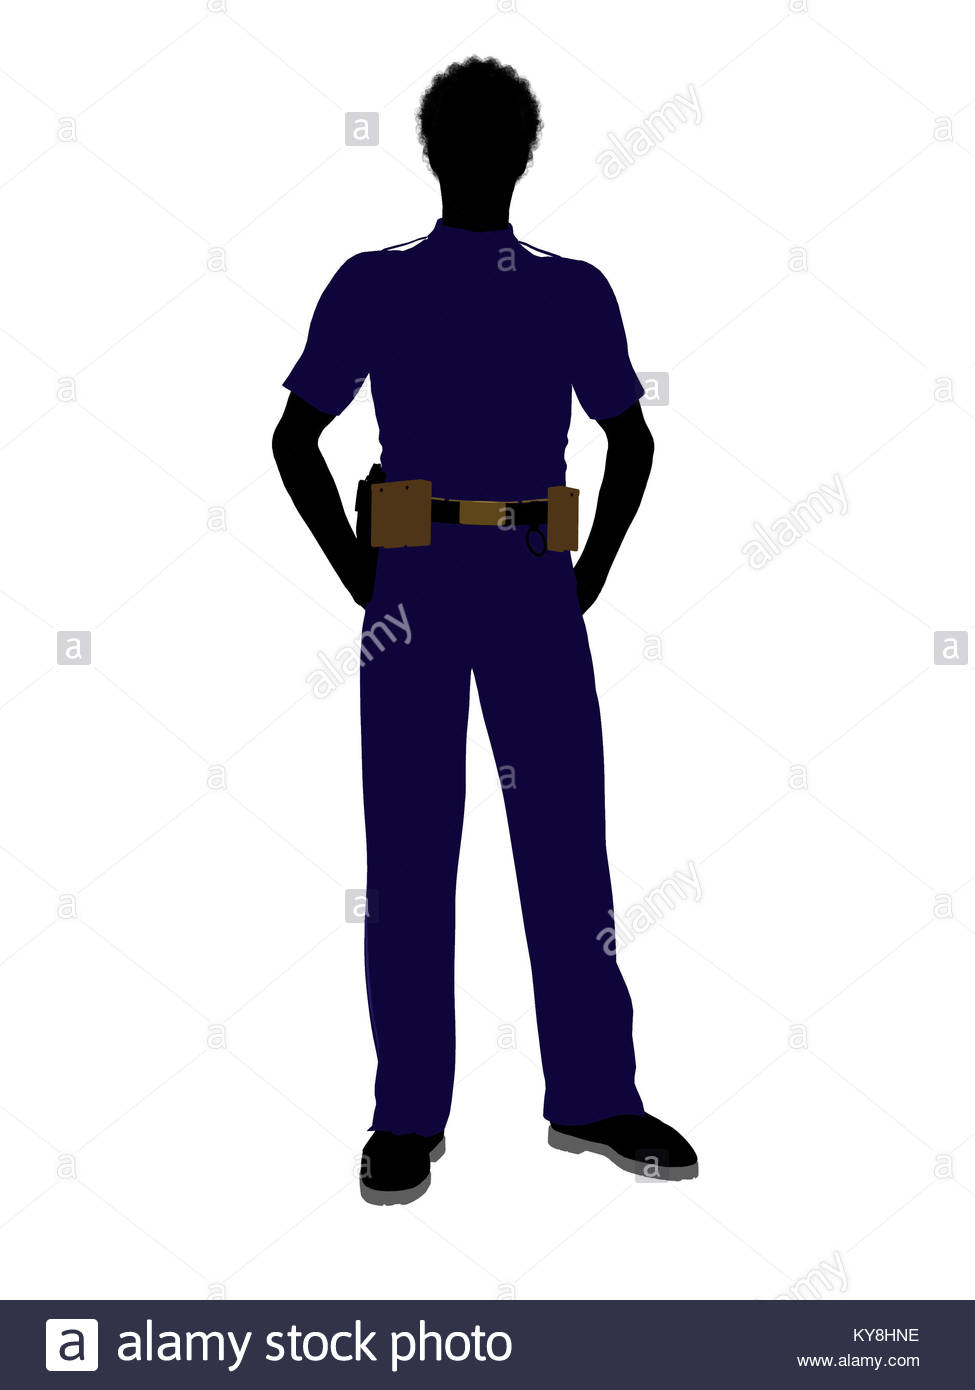 975x1390fricanmerican Male Police Officer Silhouette Illustration On